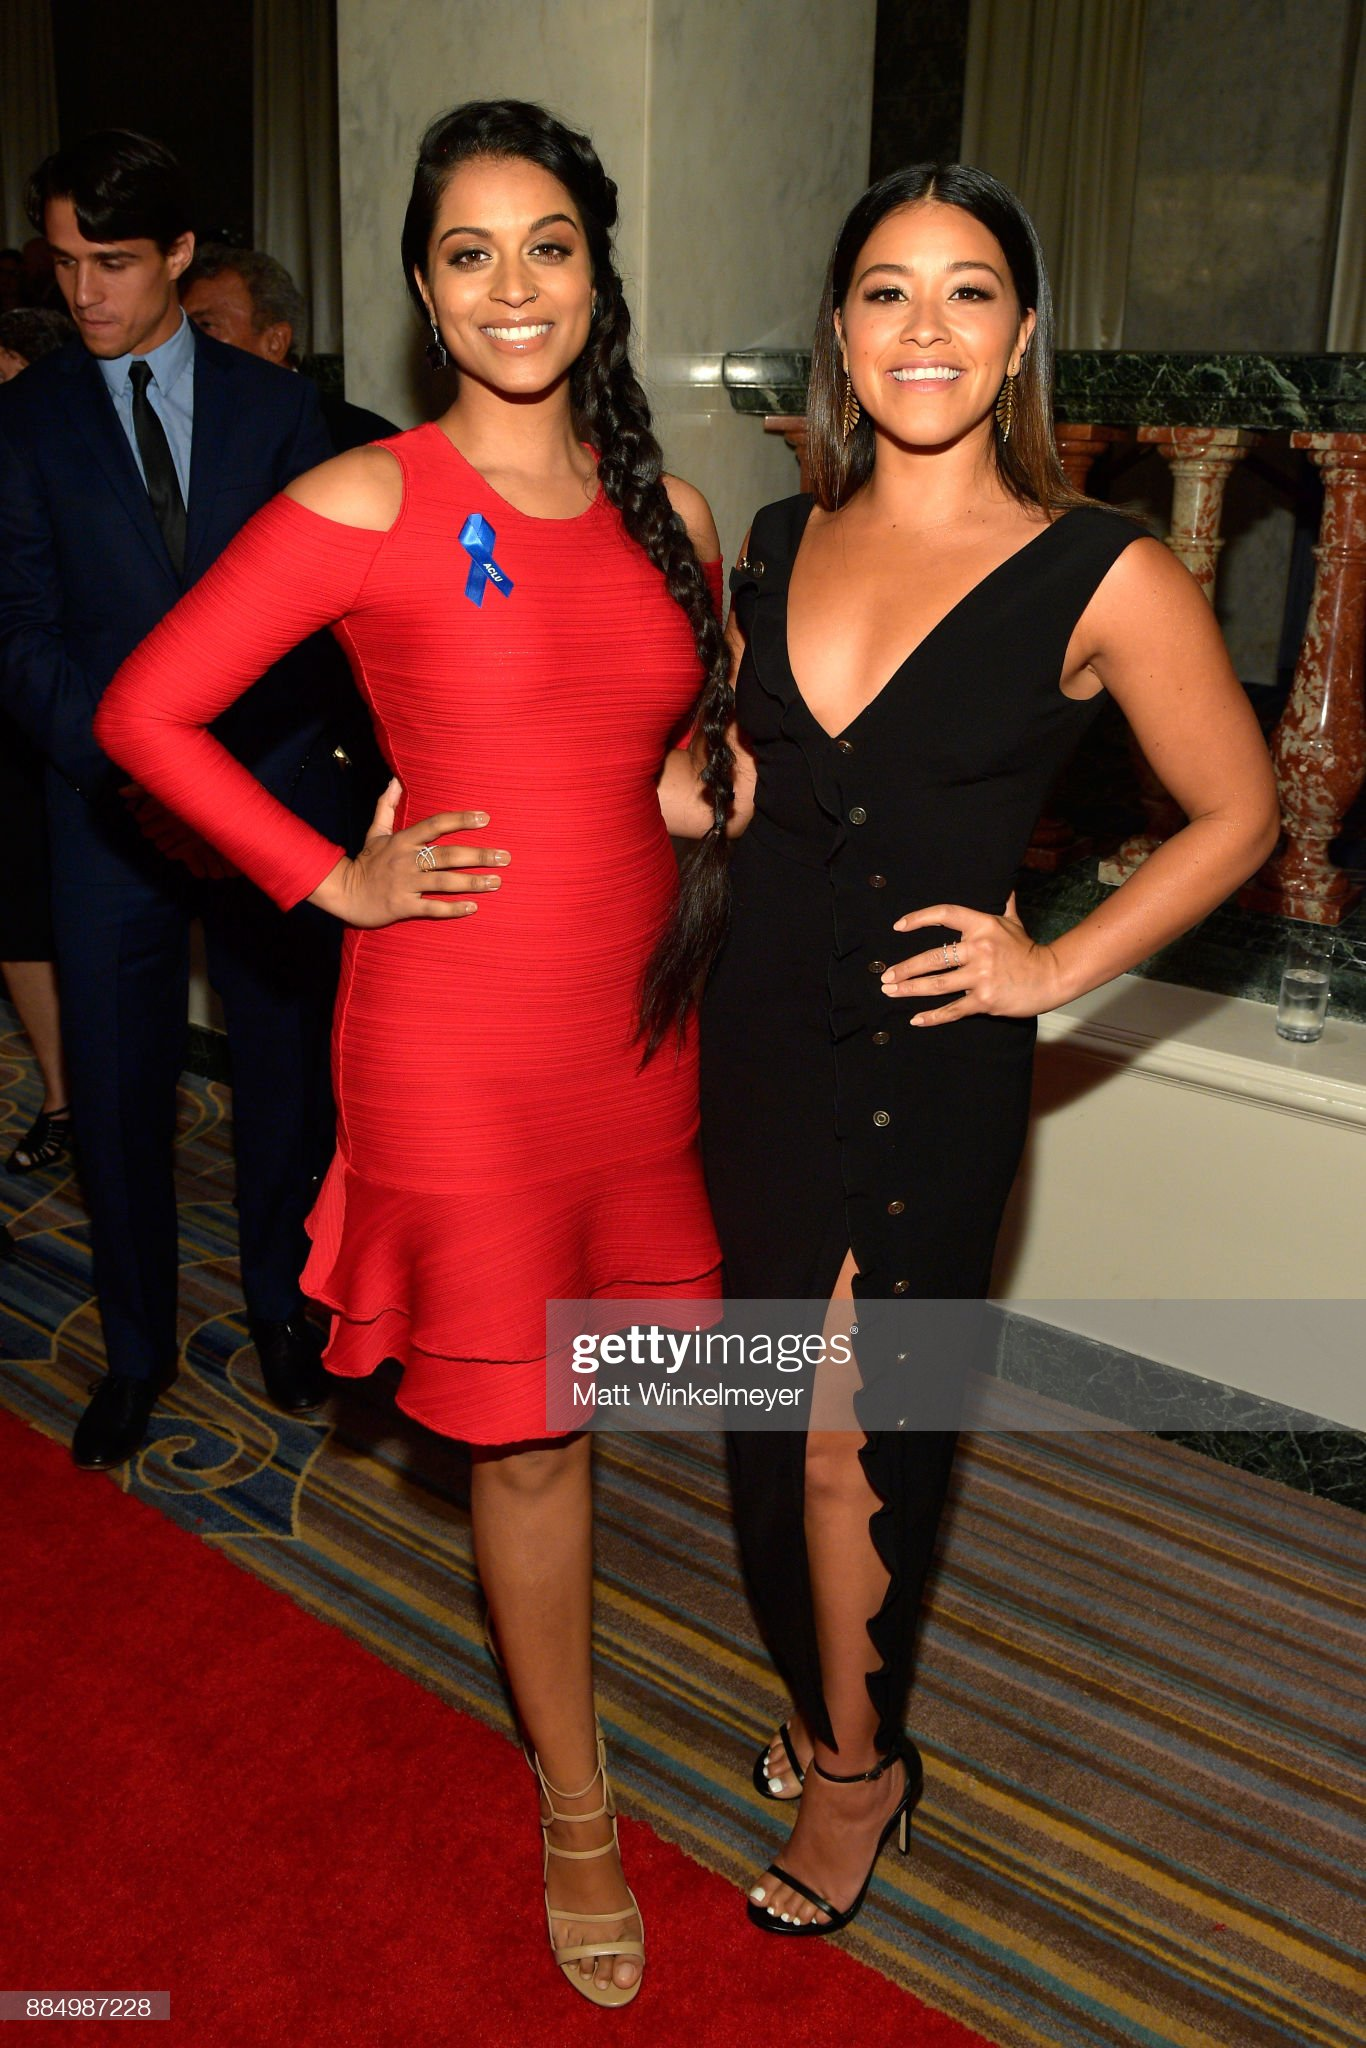 ¿Cuánto mide Lilly Singh? - Altura - Real height Lilly-singh-and-honoree-gina-rodriguez-attend-aclu-socal-hosts-annual-picture-id884987228?s=2048x2048